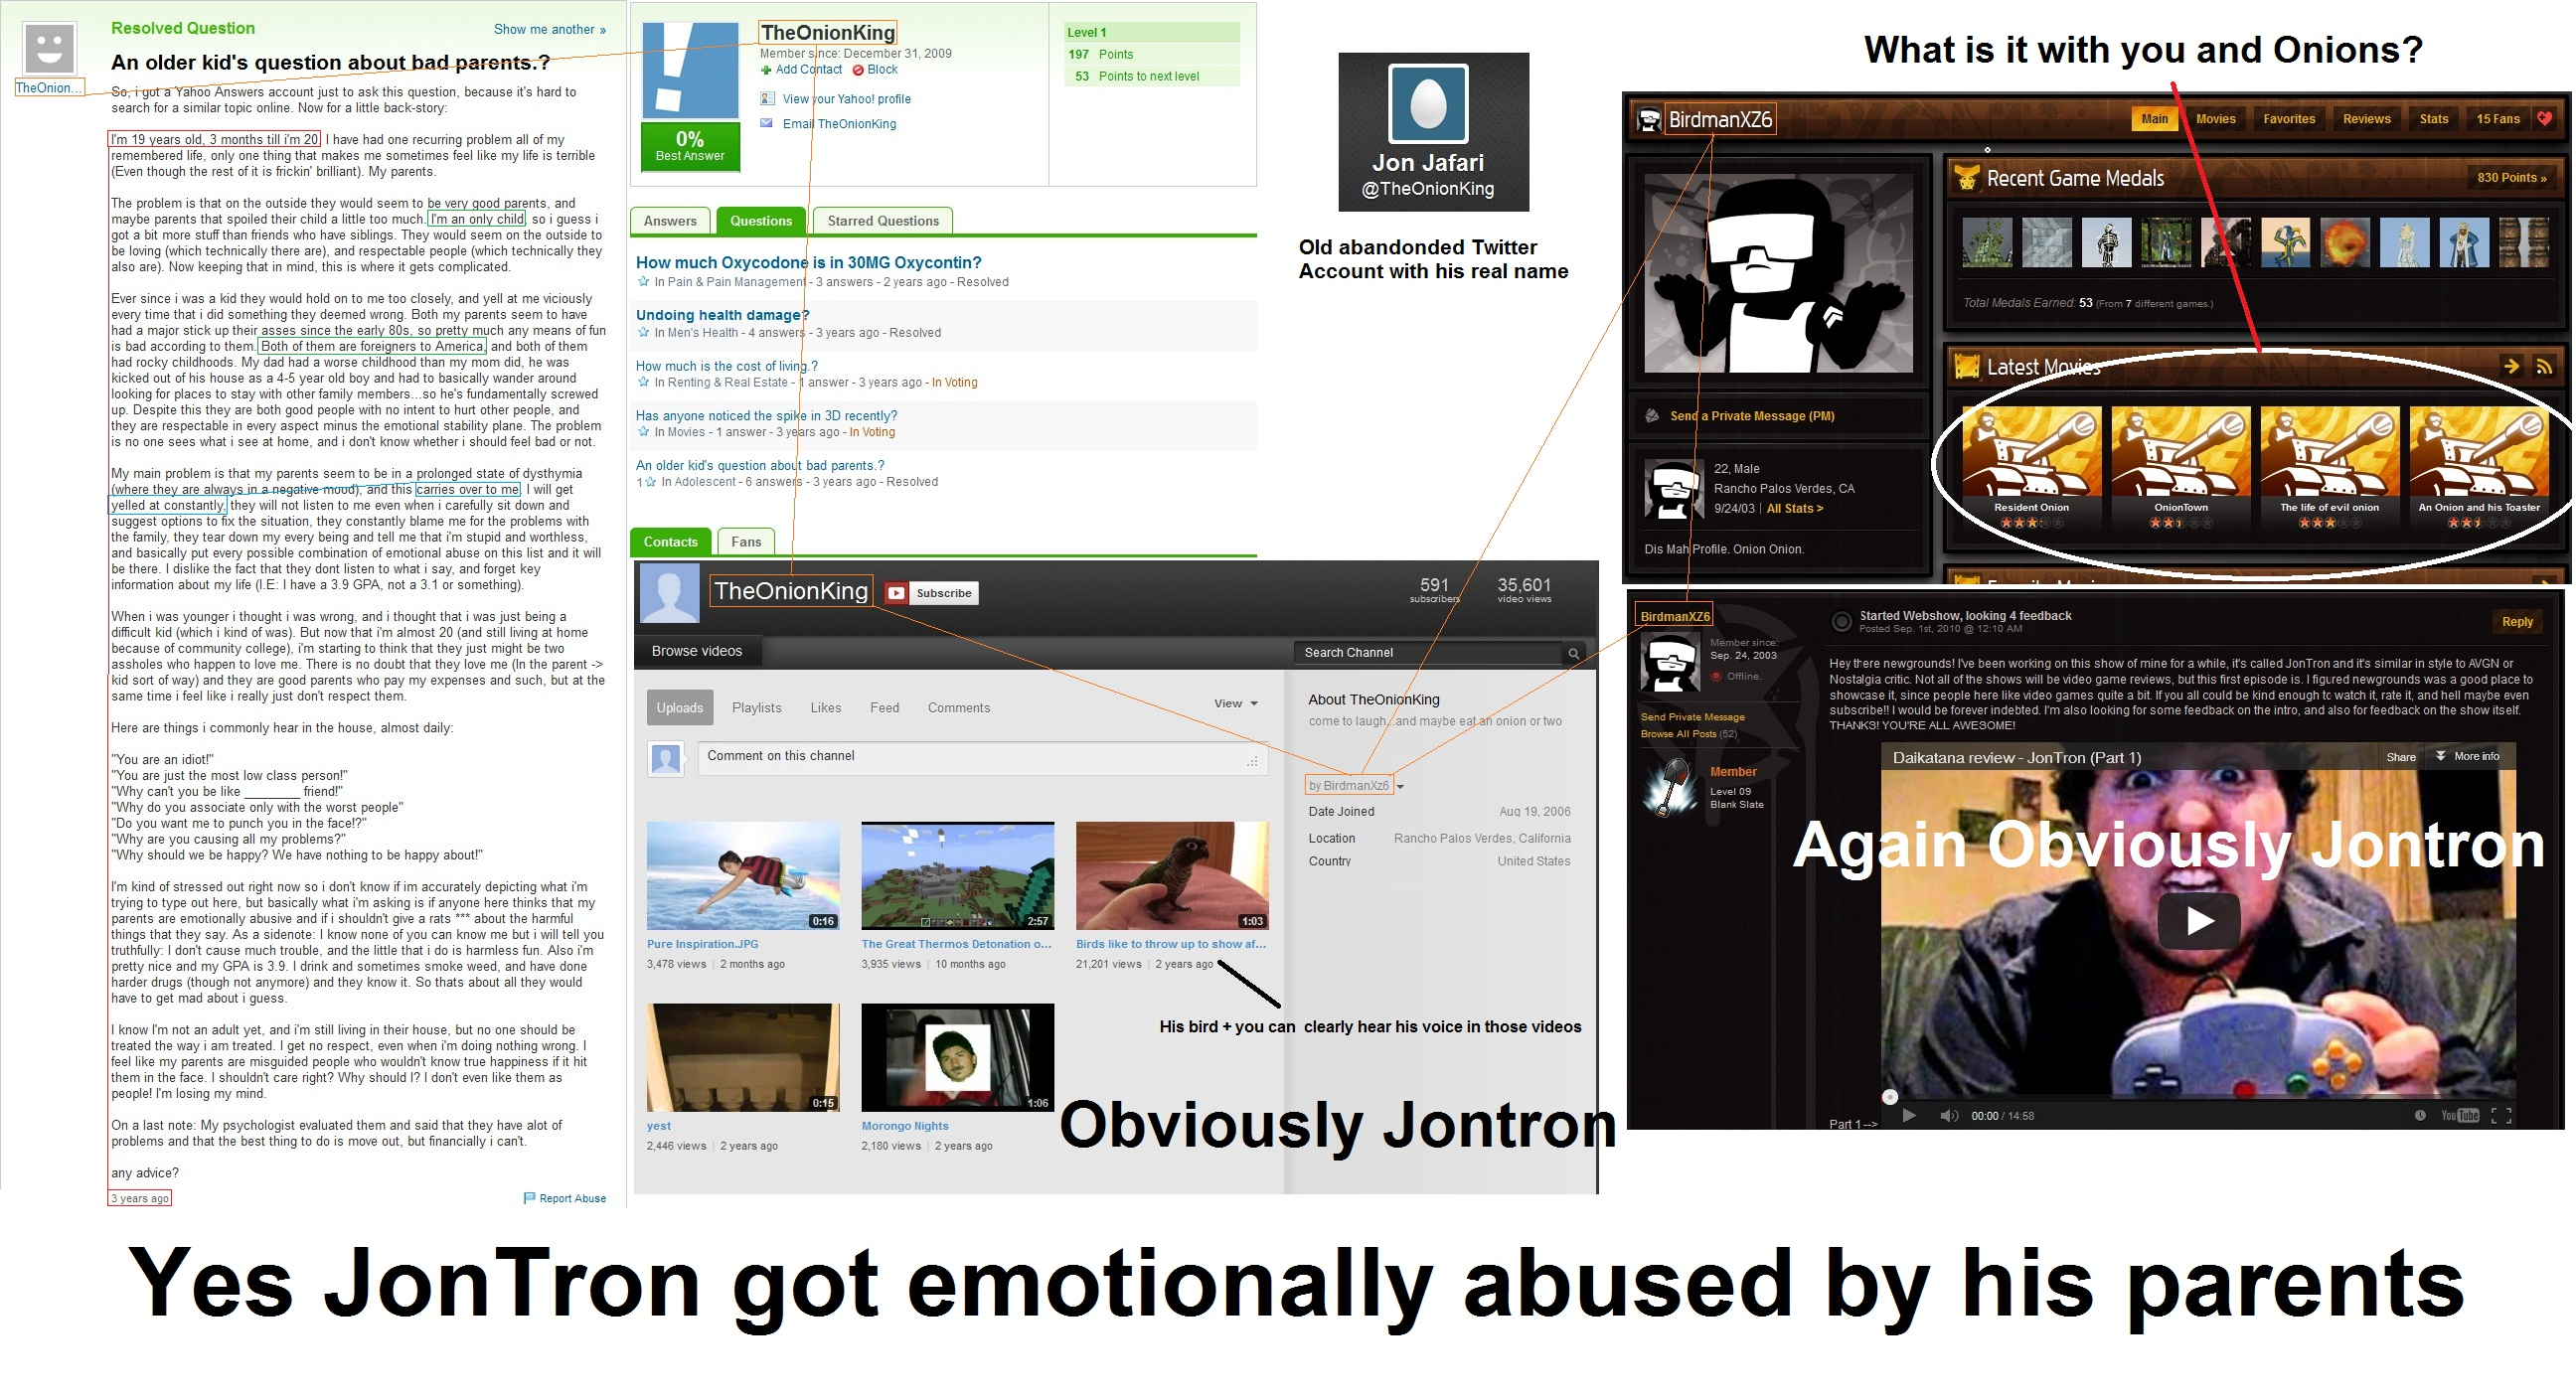 insanecyclone general that sega with about make being they image mine details anal incredibly both personal accuracy confidently thread when vouch writer friend were logo think domestic beat head facebook over jsrf picture possibly nerdy inundated correctness fact wonder mismatched knows even comes accurate full knowing well doing buying millions spent games